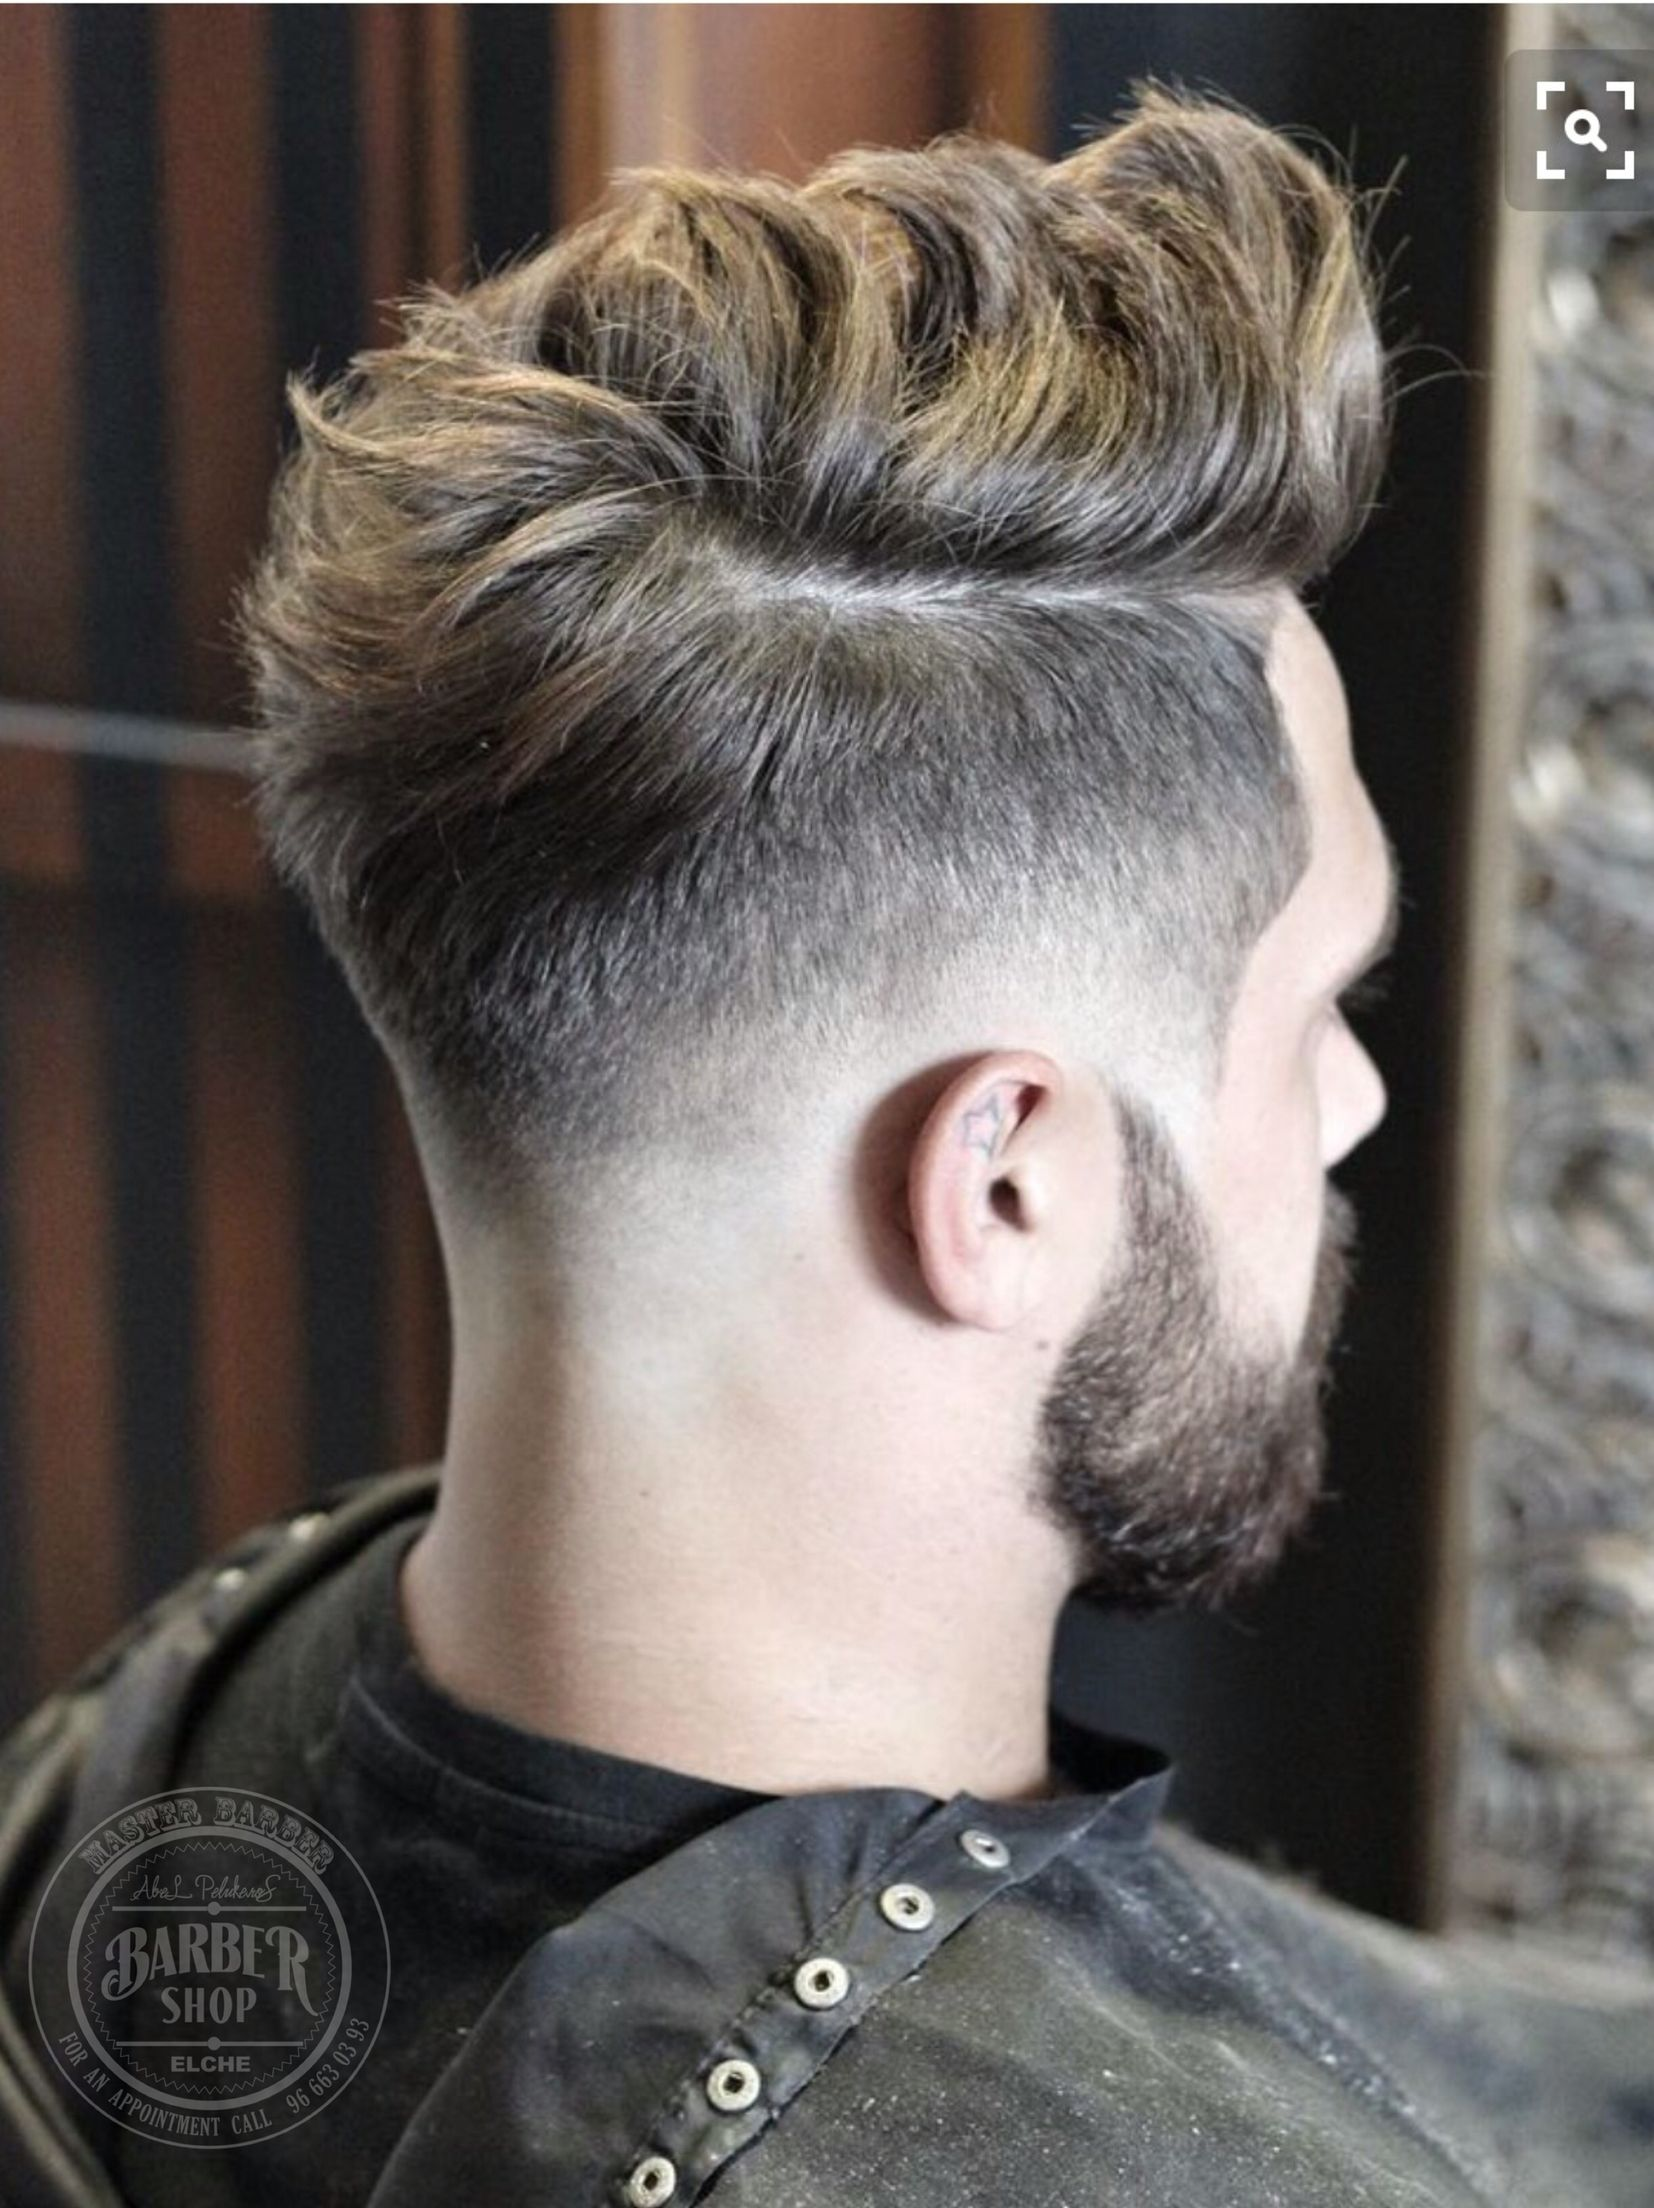 New style haircuts for men conceito em barbearia capitaomustacheclub capitao mustache